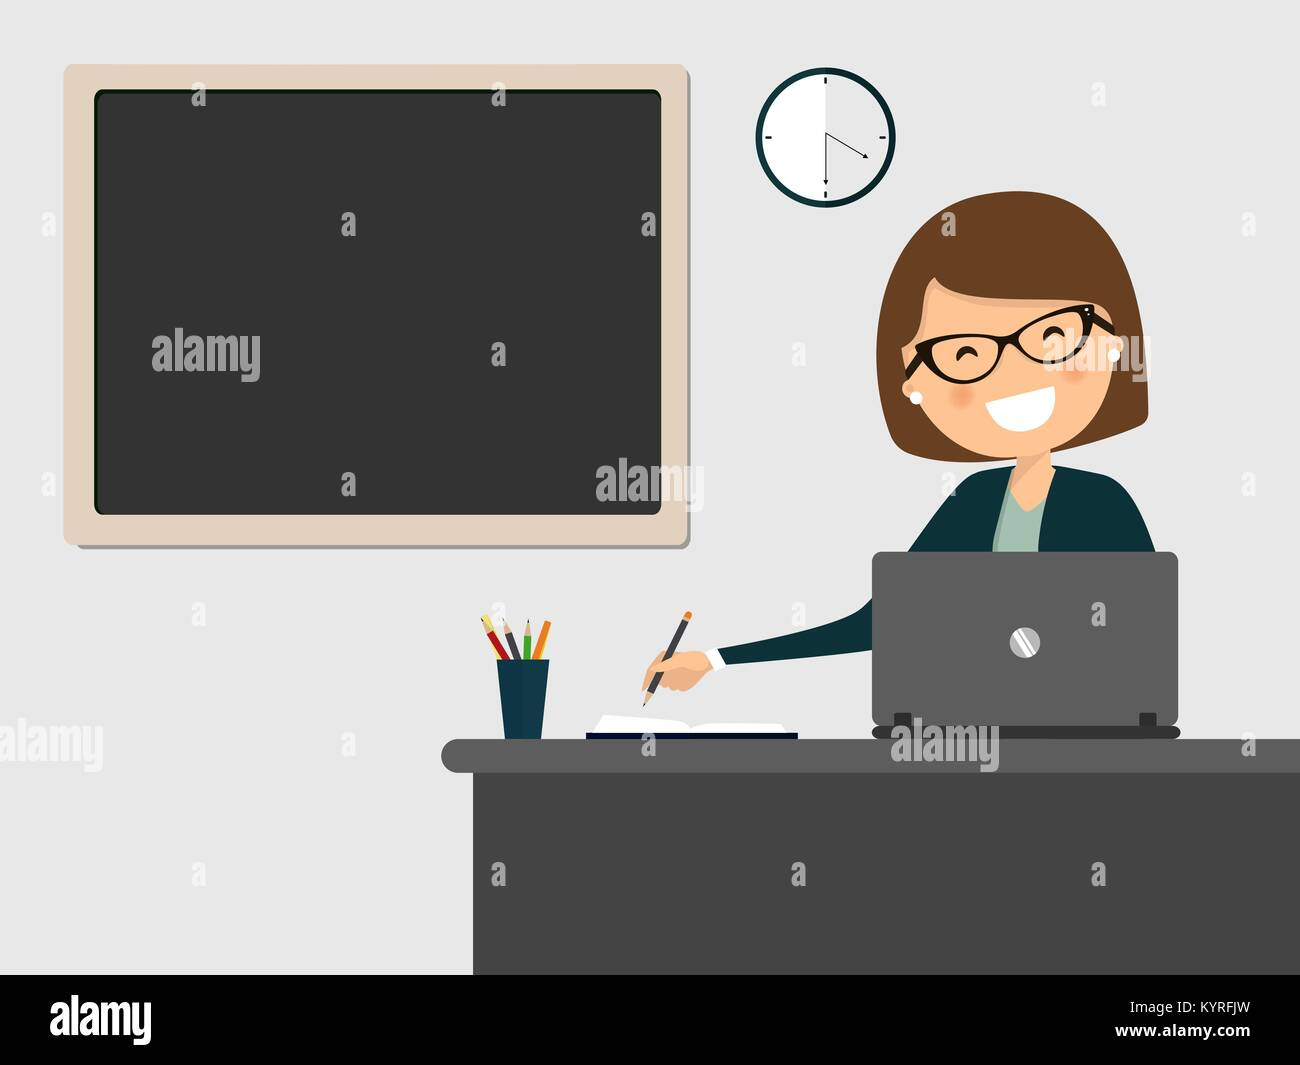 Secretary smiling at workplace with clean blackboard hanging on the wall. Vector illustration - Stock Vector